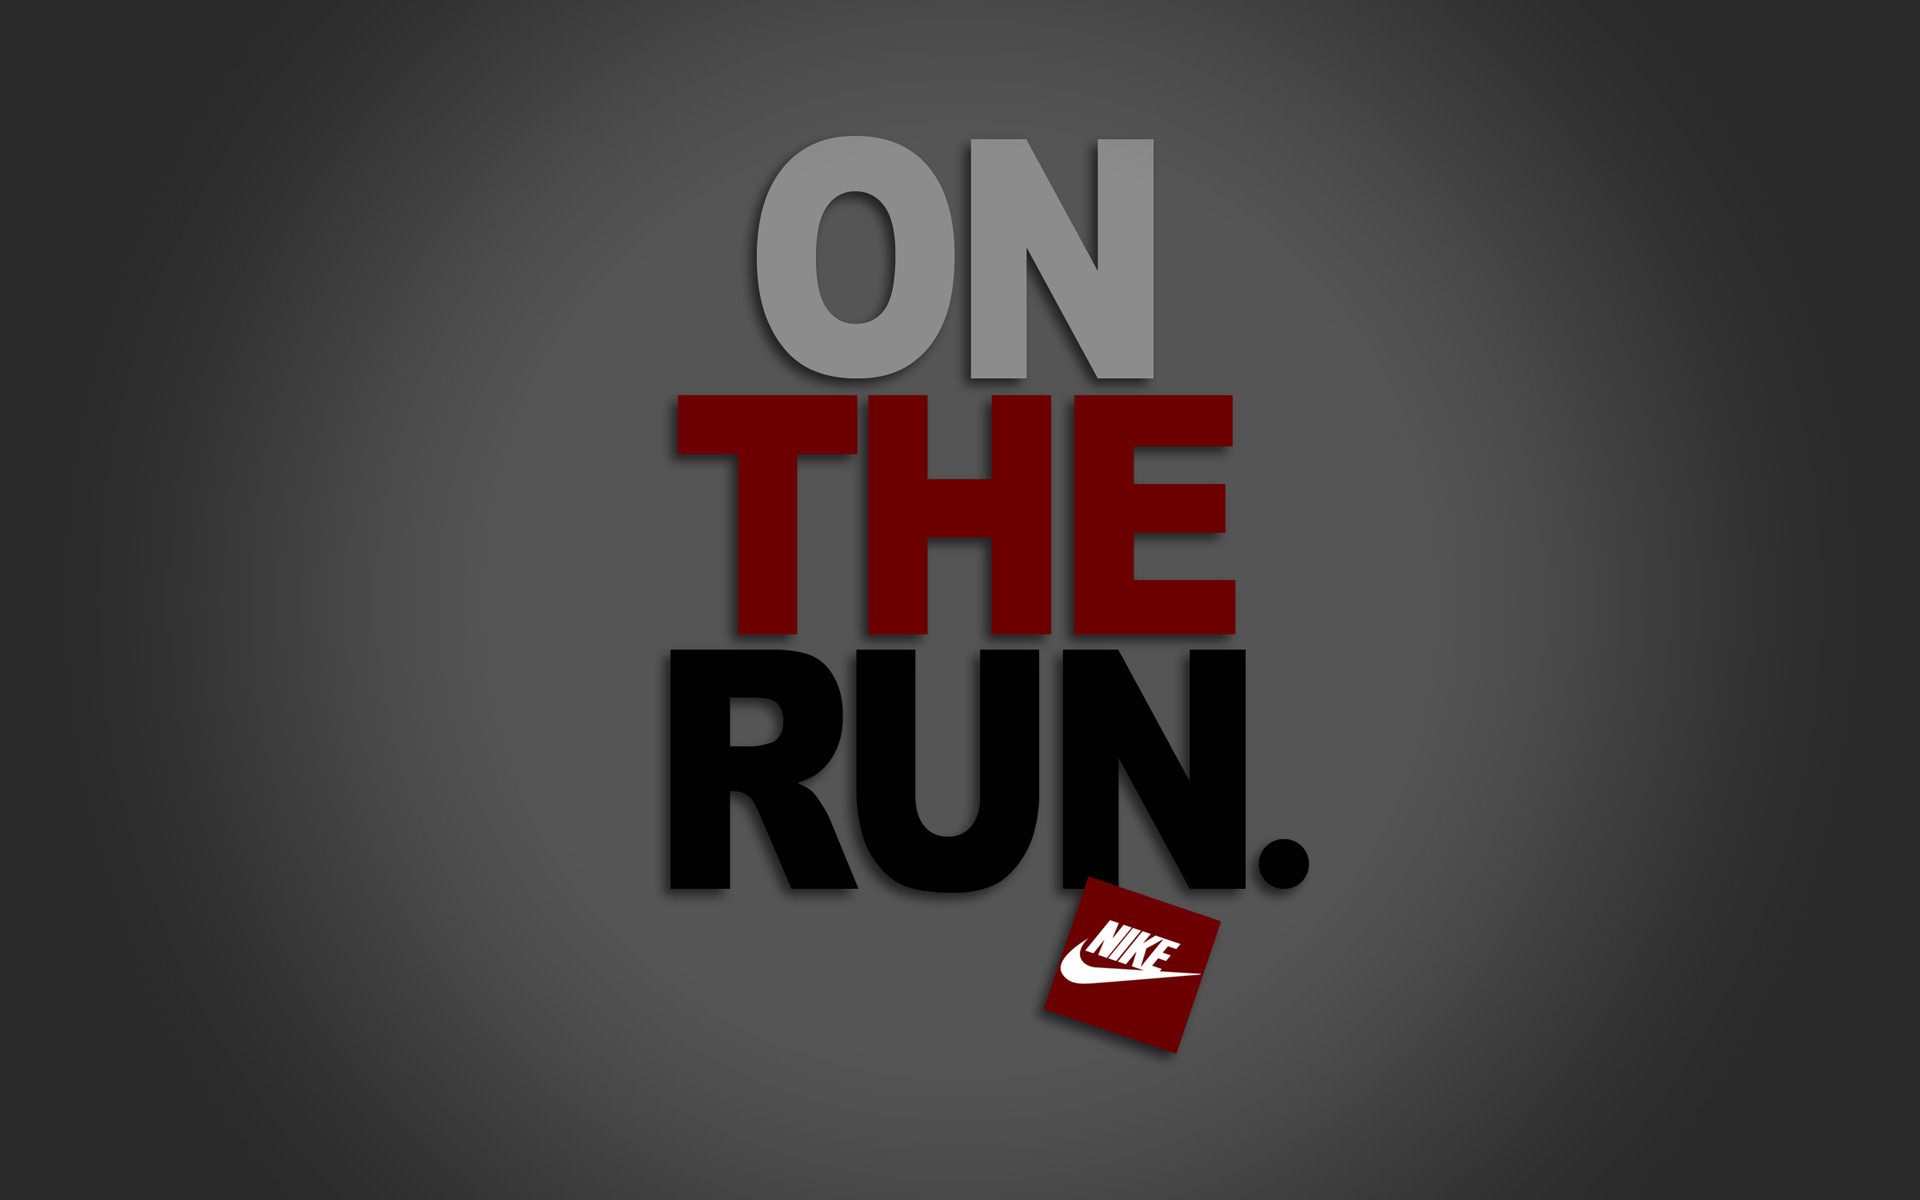 nike on the run wallpaper hd backgrounds for mobile and pc free images 1920x1200